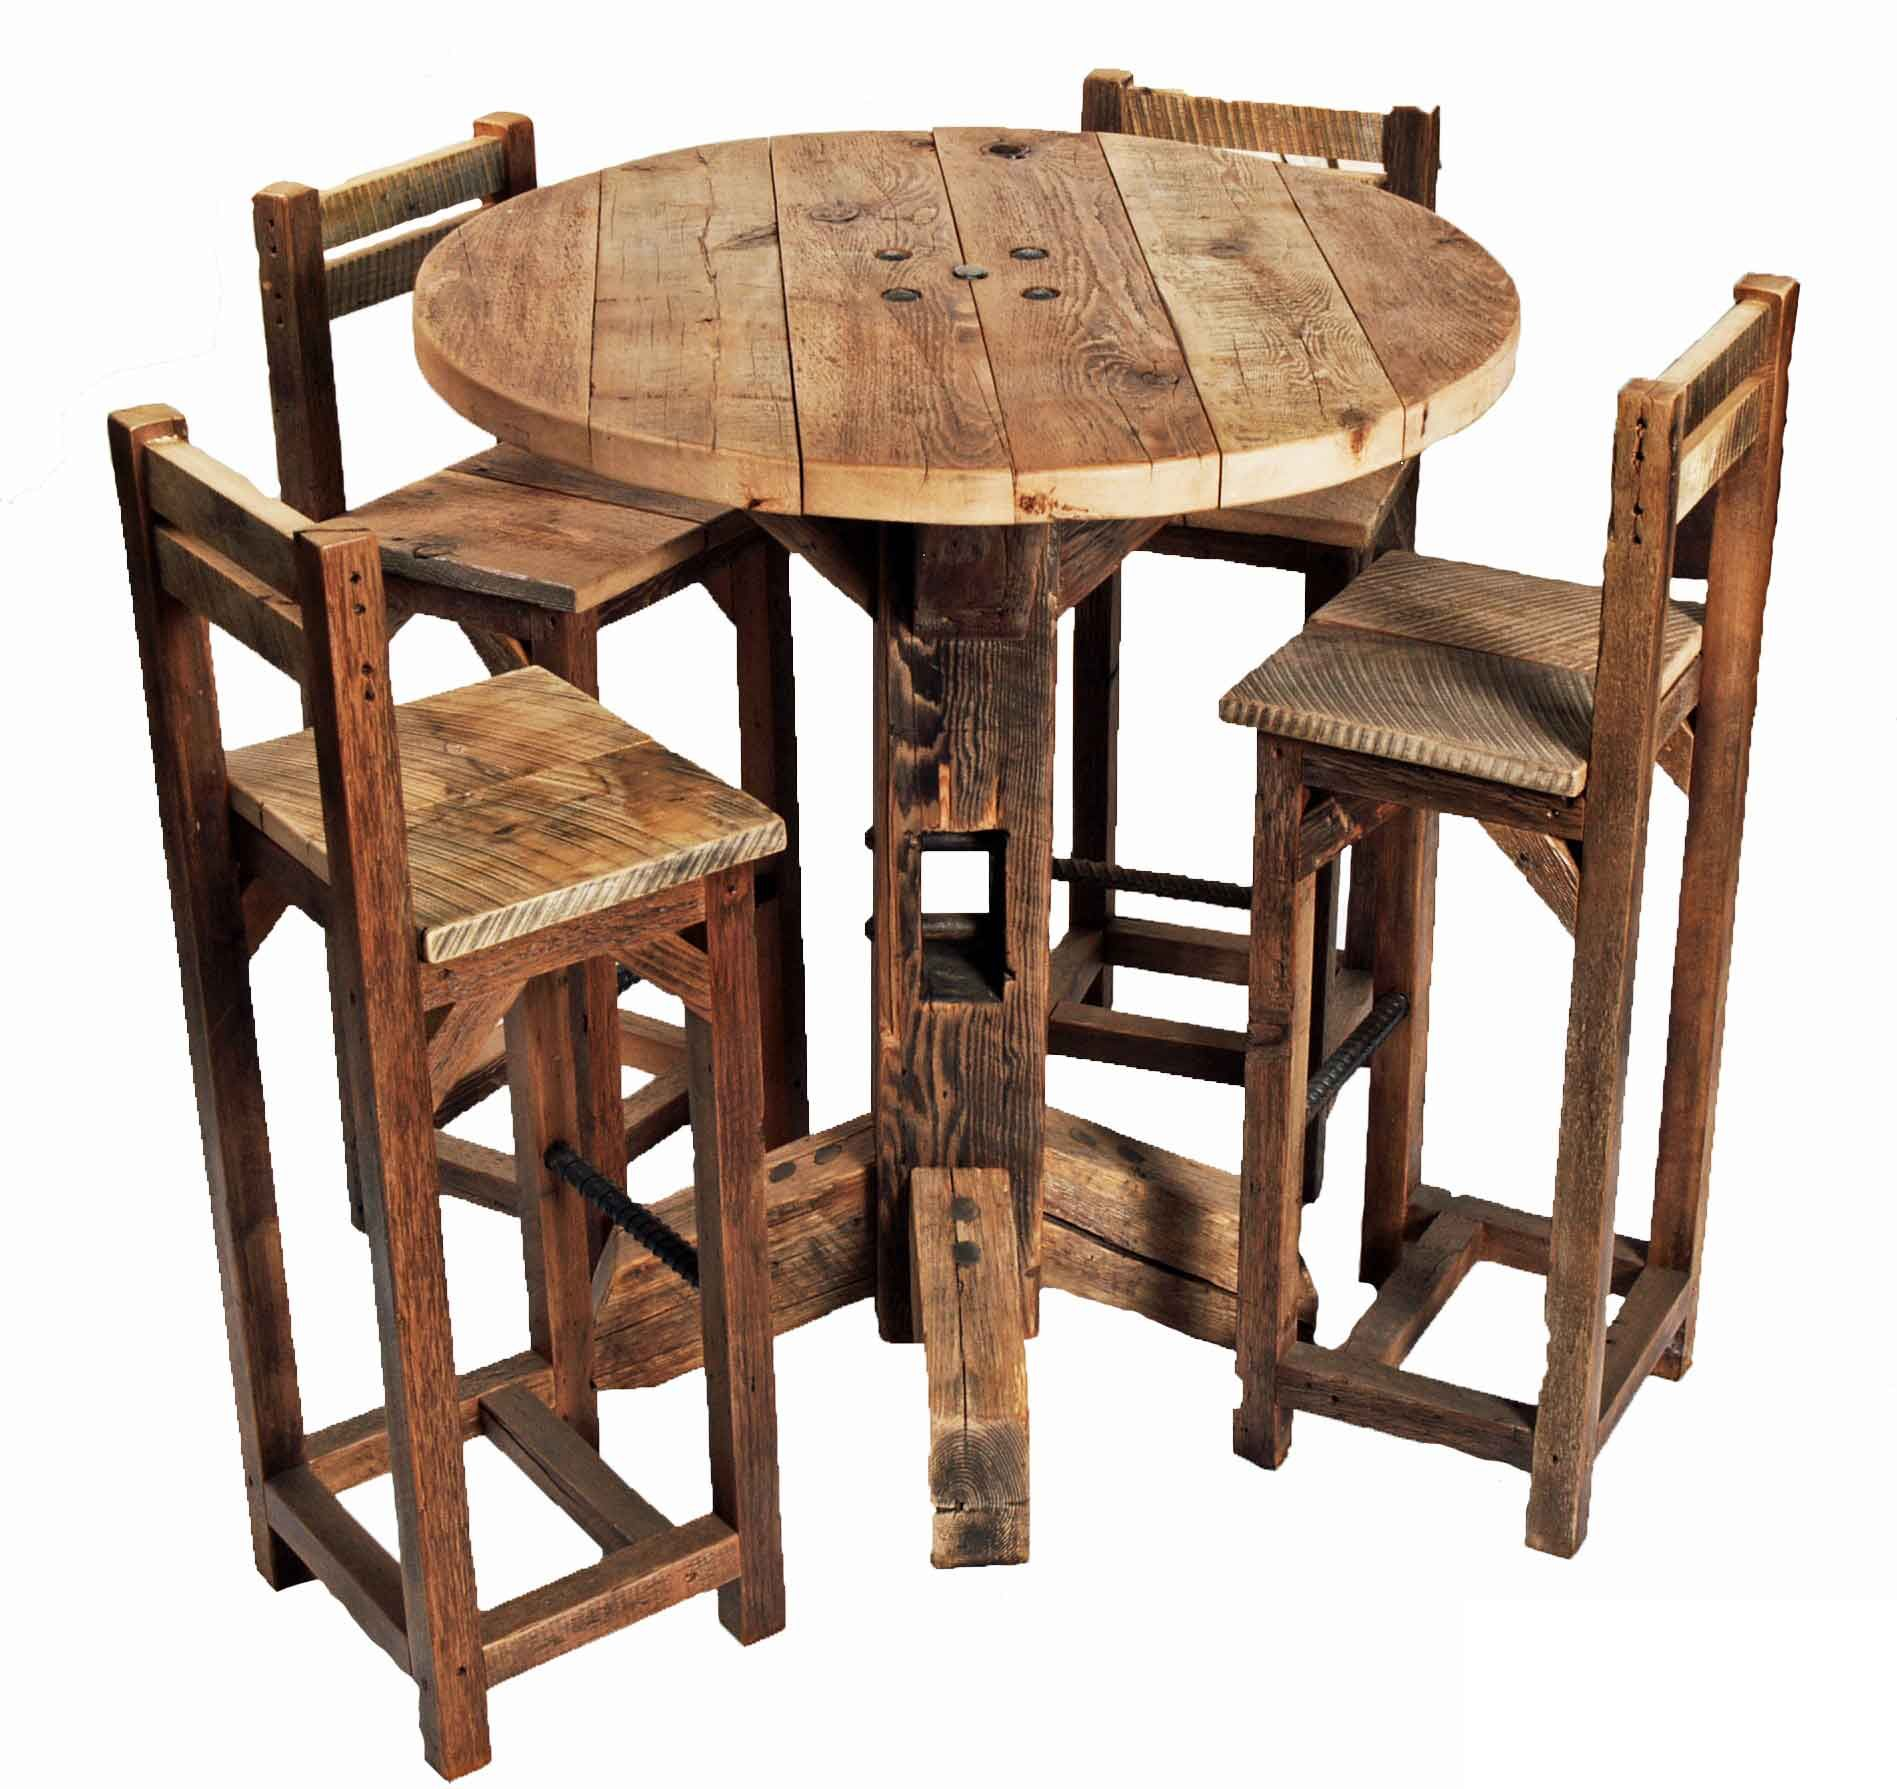 Furniture Old Rustic Small High Round Top Kitchen Table And Chair With Legs Back Ideas Sets